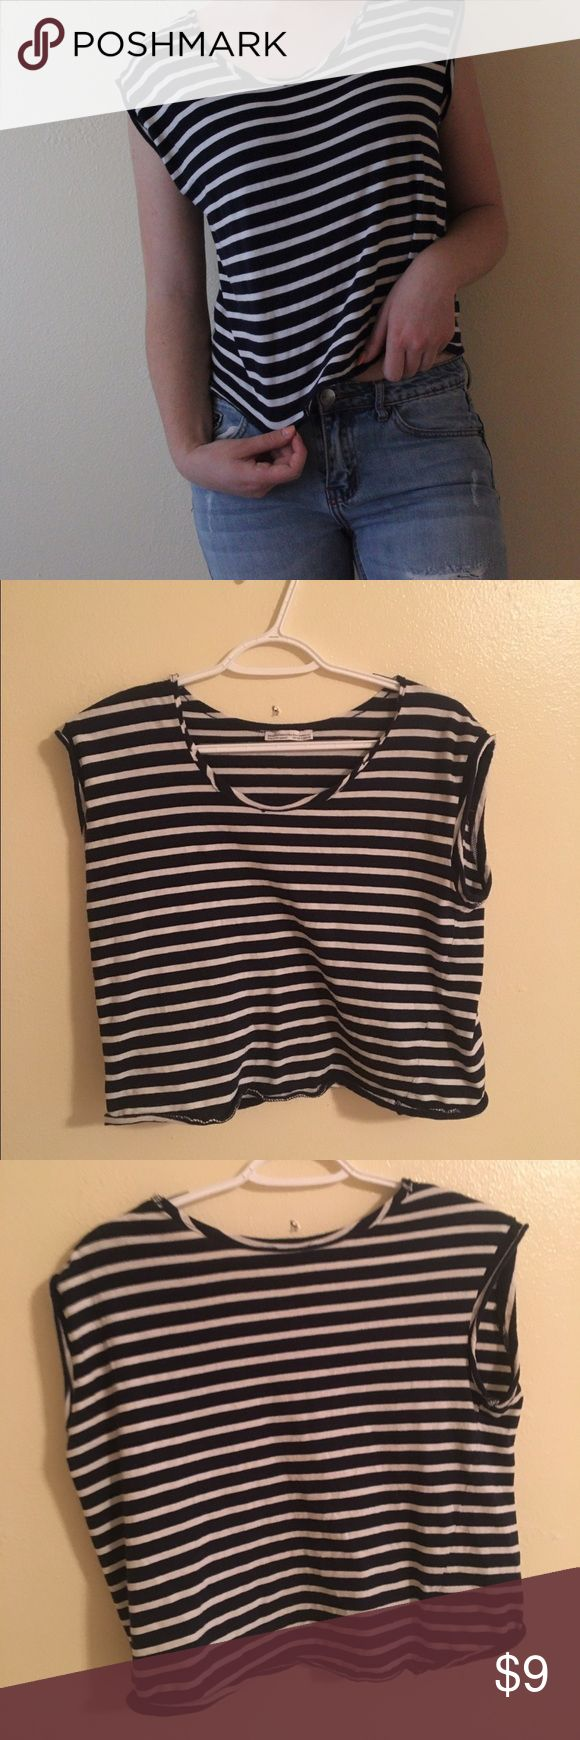 Striped blue and white tee This tee is so soft and is super flowy. It has a rip (as you can see in the fourth picture), but it's not too noticeable. Otherwise, great condition Zara Tops Tees - Short Sleeve